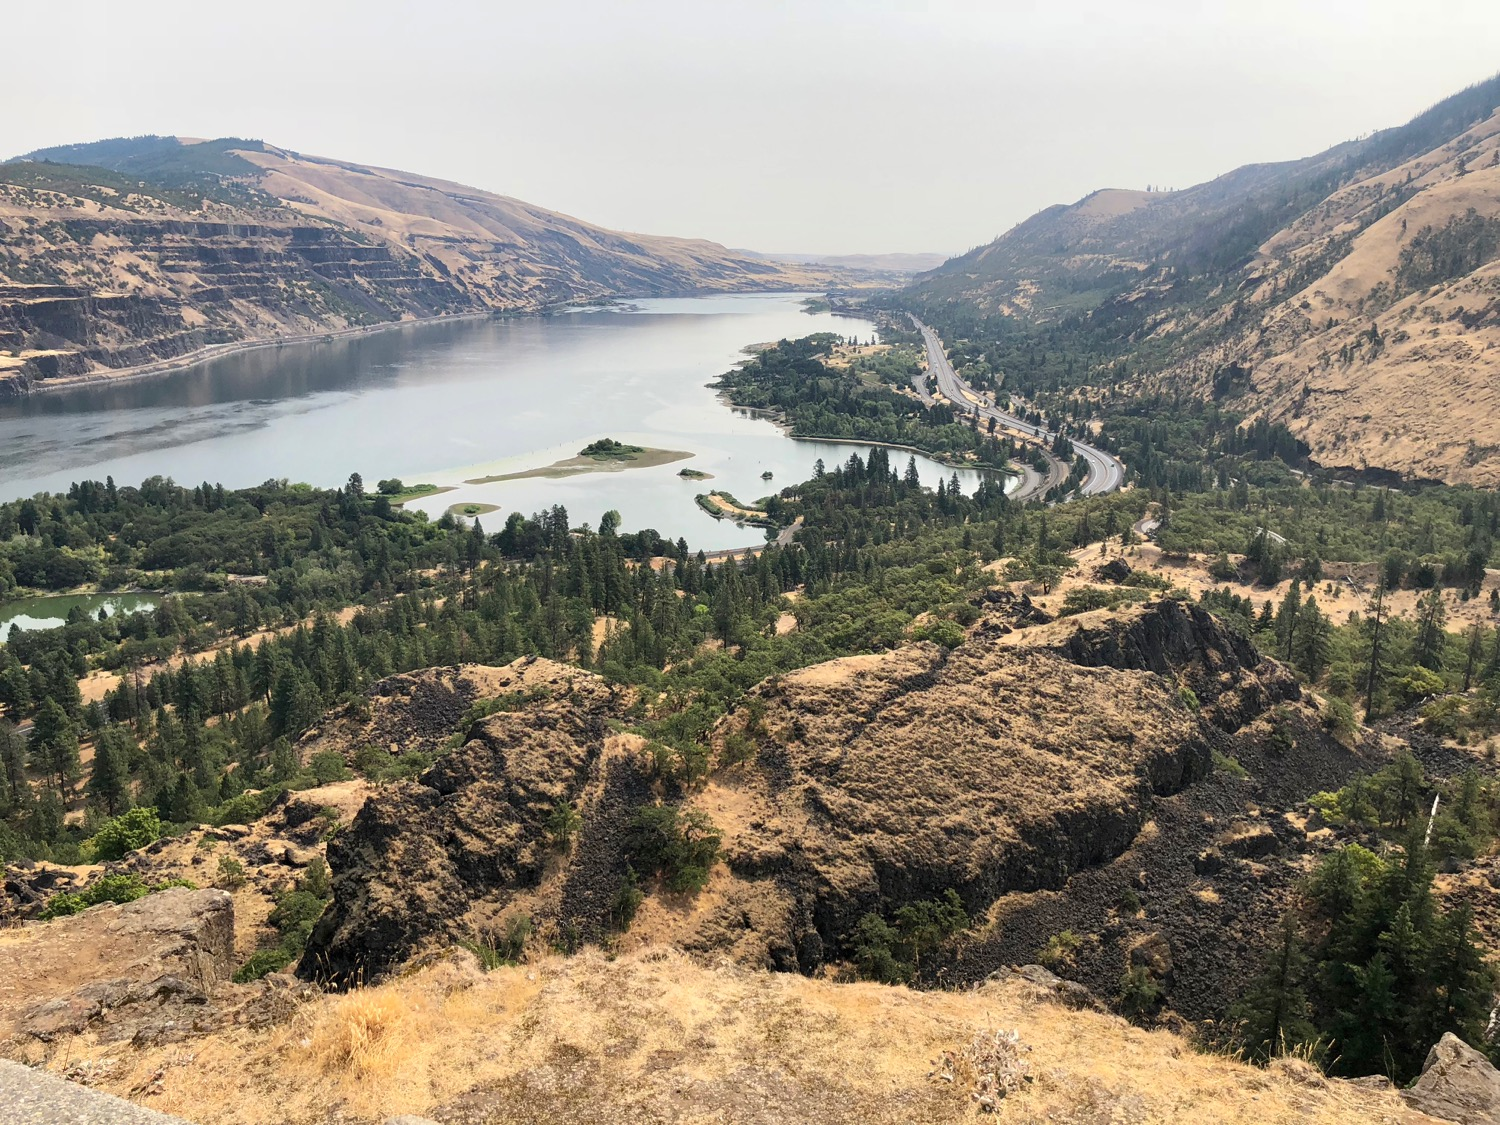 The view from the top of Rowena Loops.